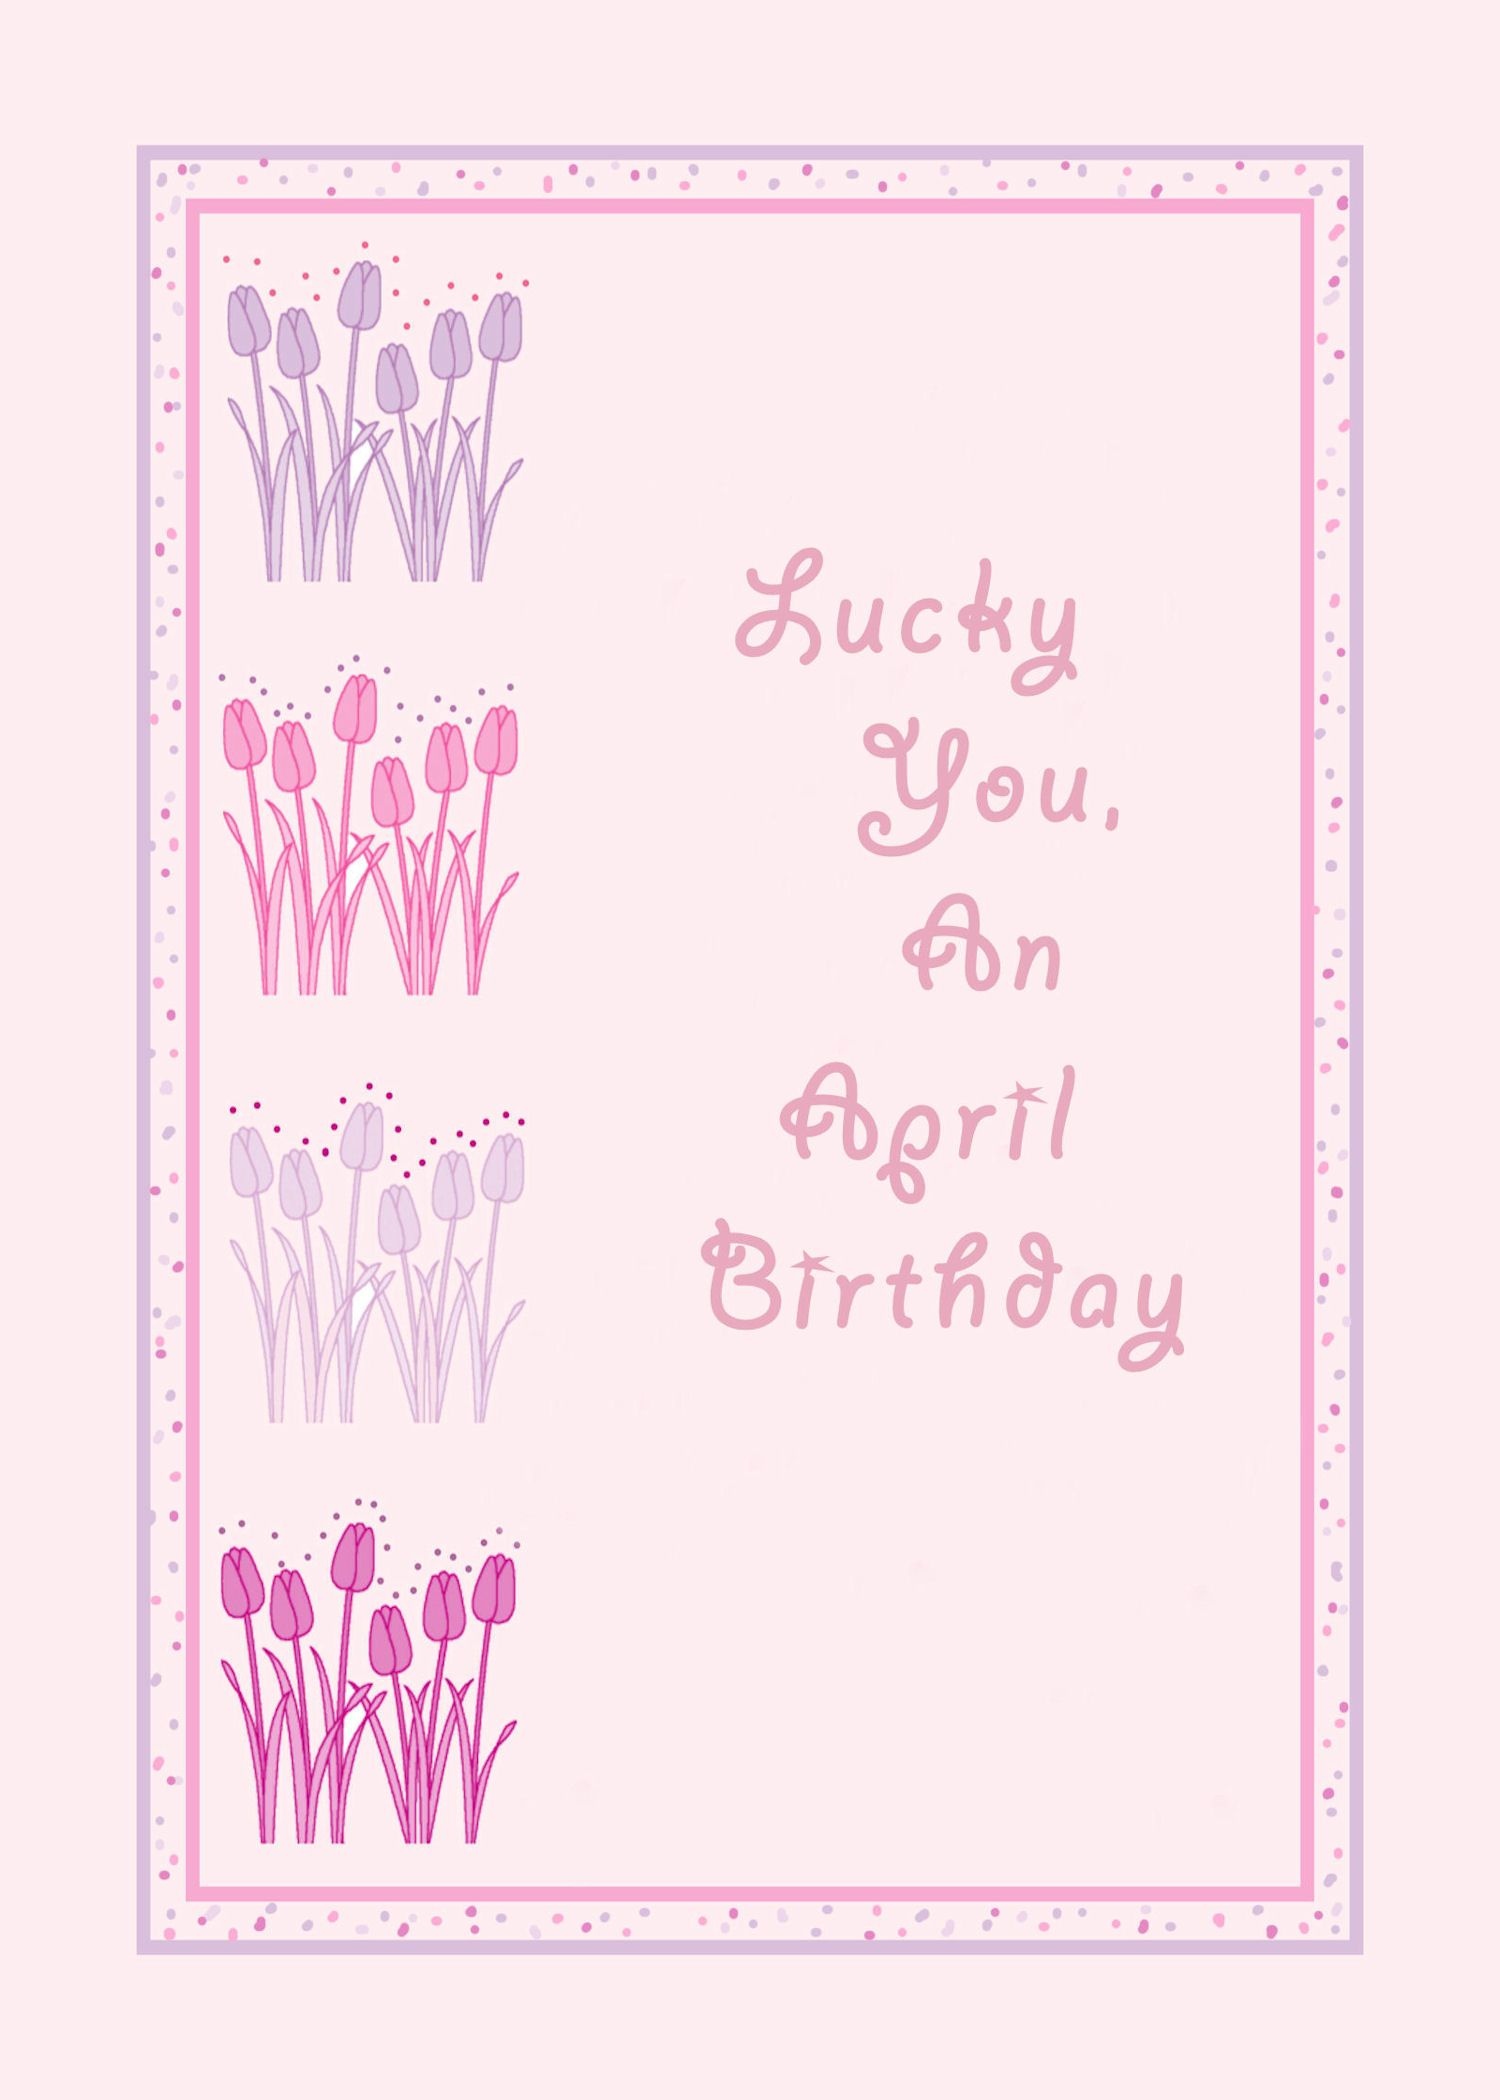 Birthday Greeting Card For April By Rosie Cards C